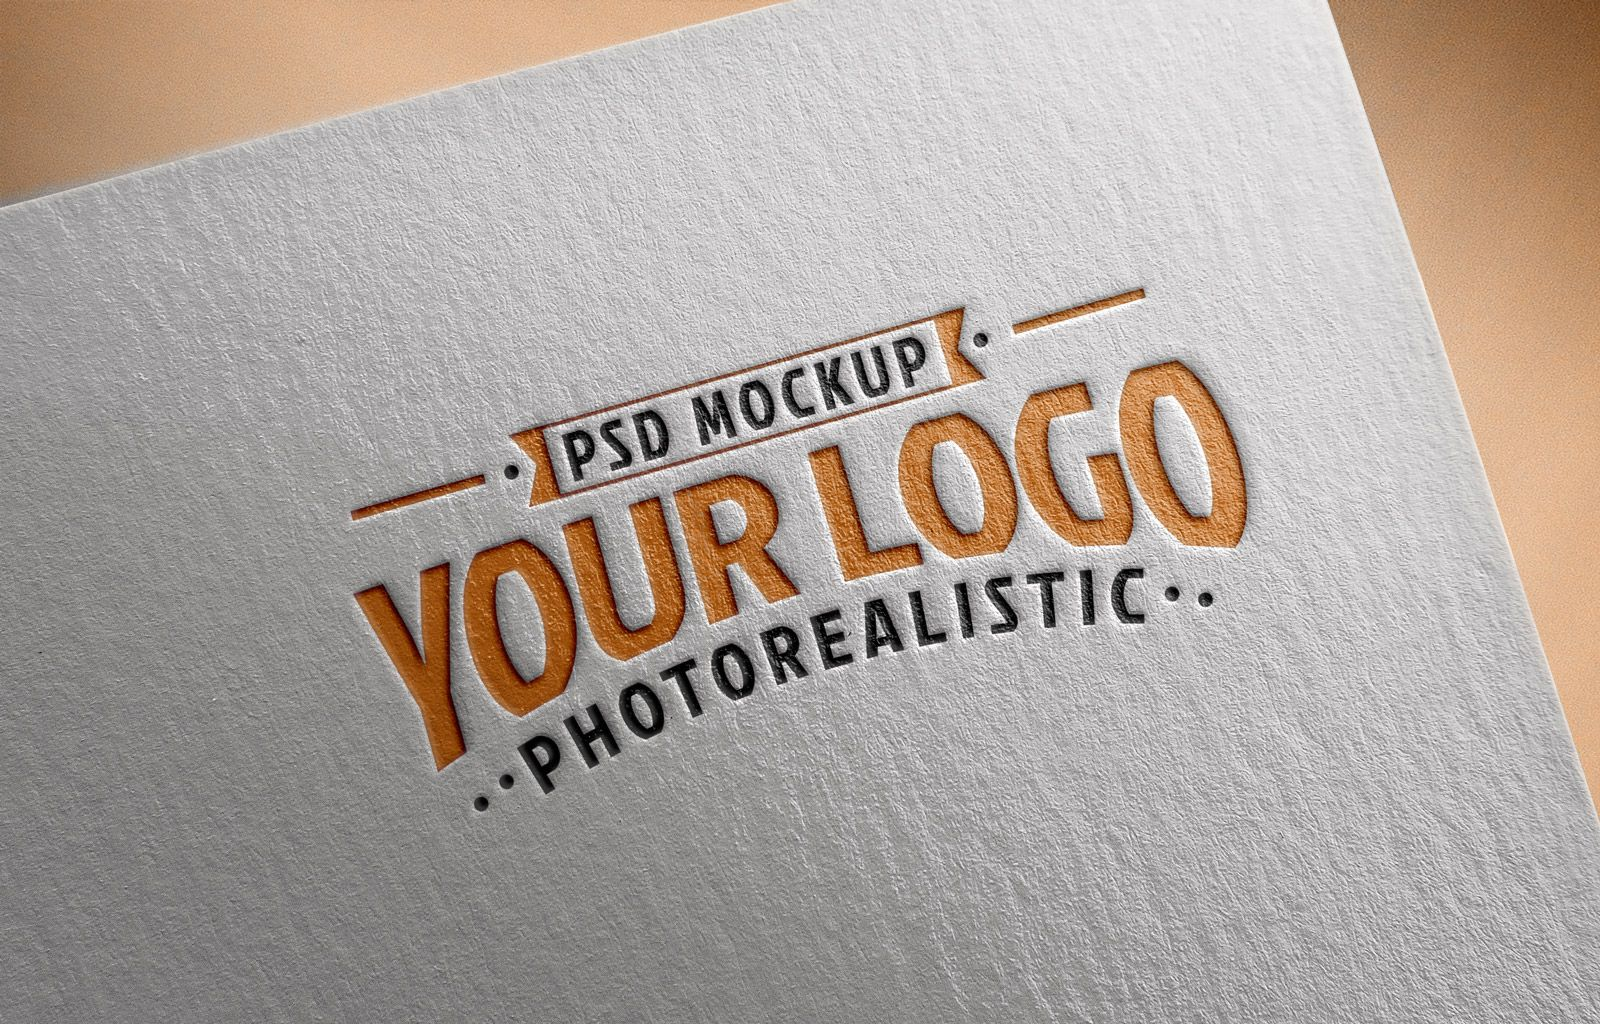 Free Logo Mockup PSD on Textured Paper